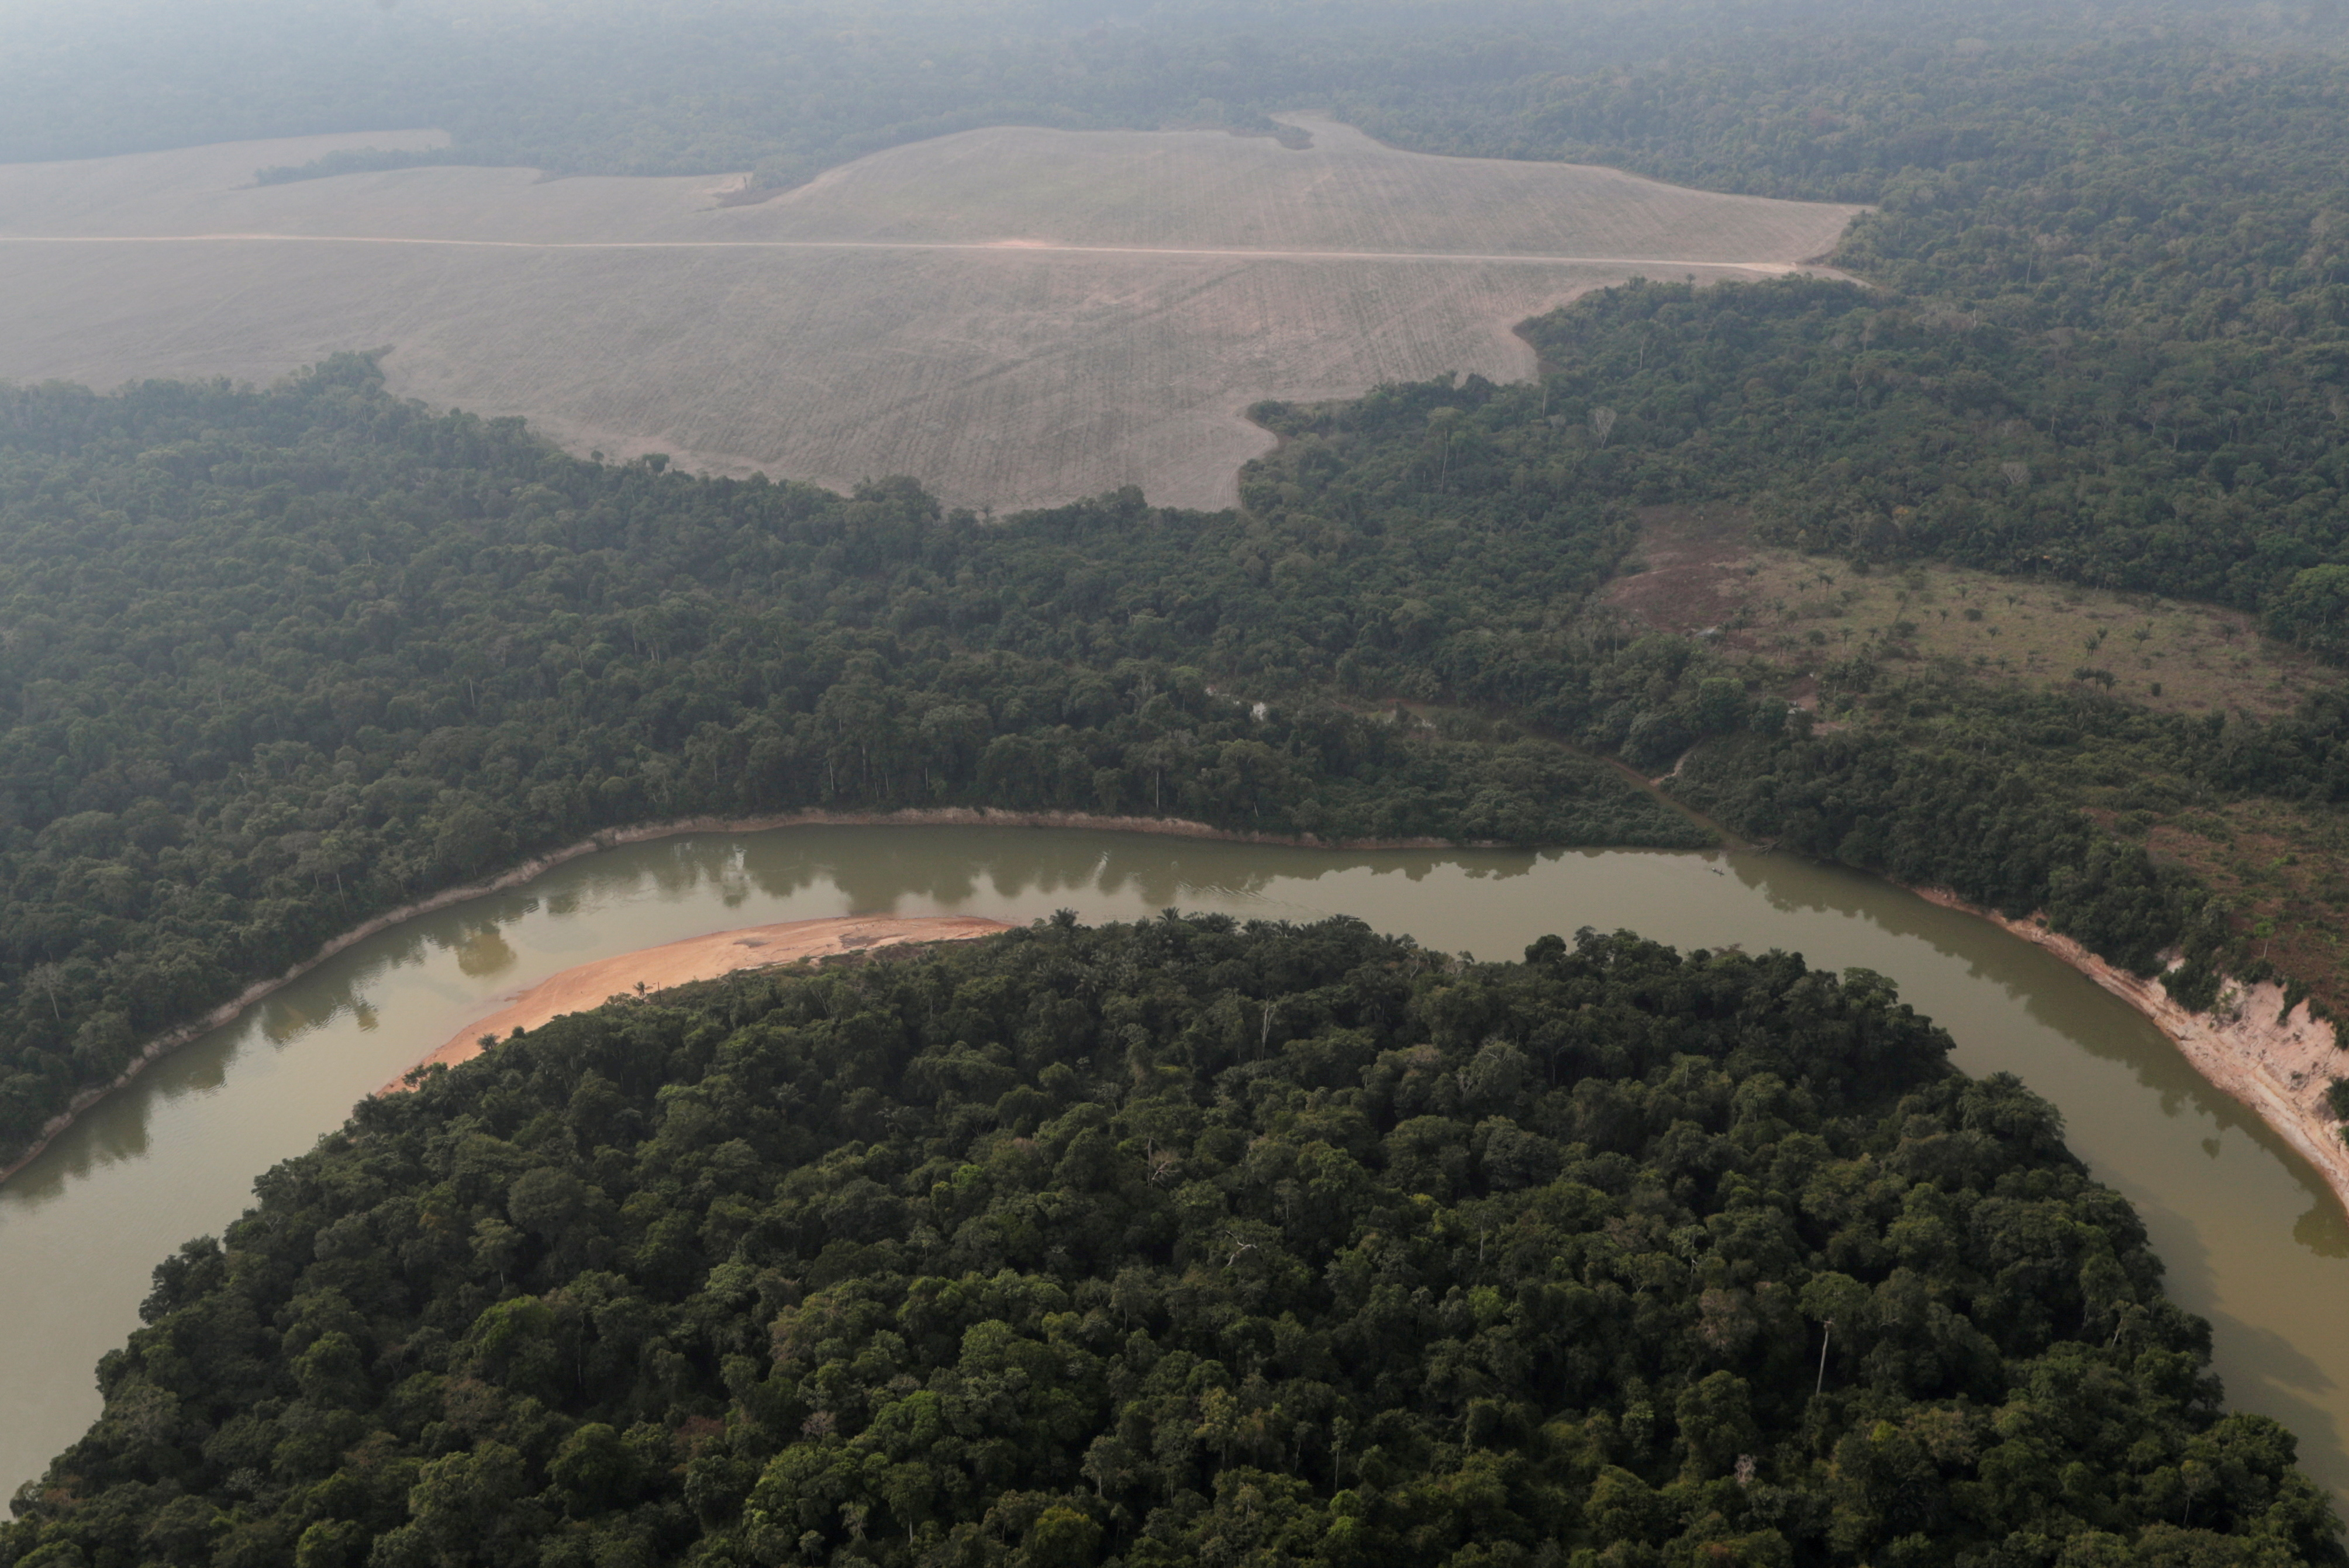 n aerial view shows a river and a deforested plot of the Amazon near Porto Velho, Rondonia State, Brazil August 14, 2020. REUTERS/Ueslei Marcelino/File Photo